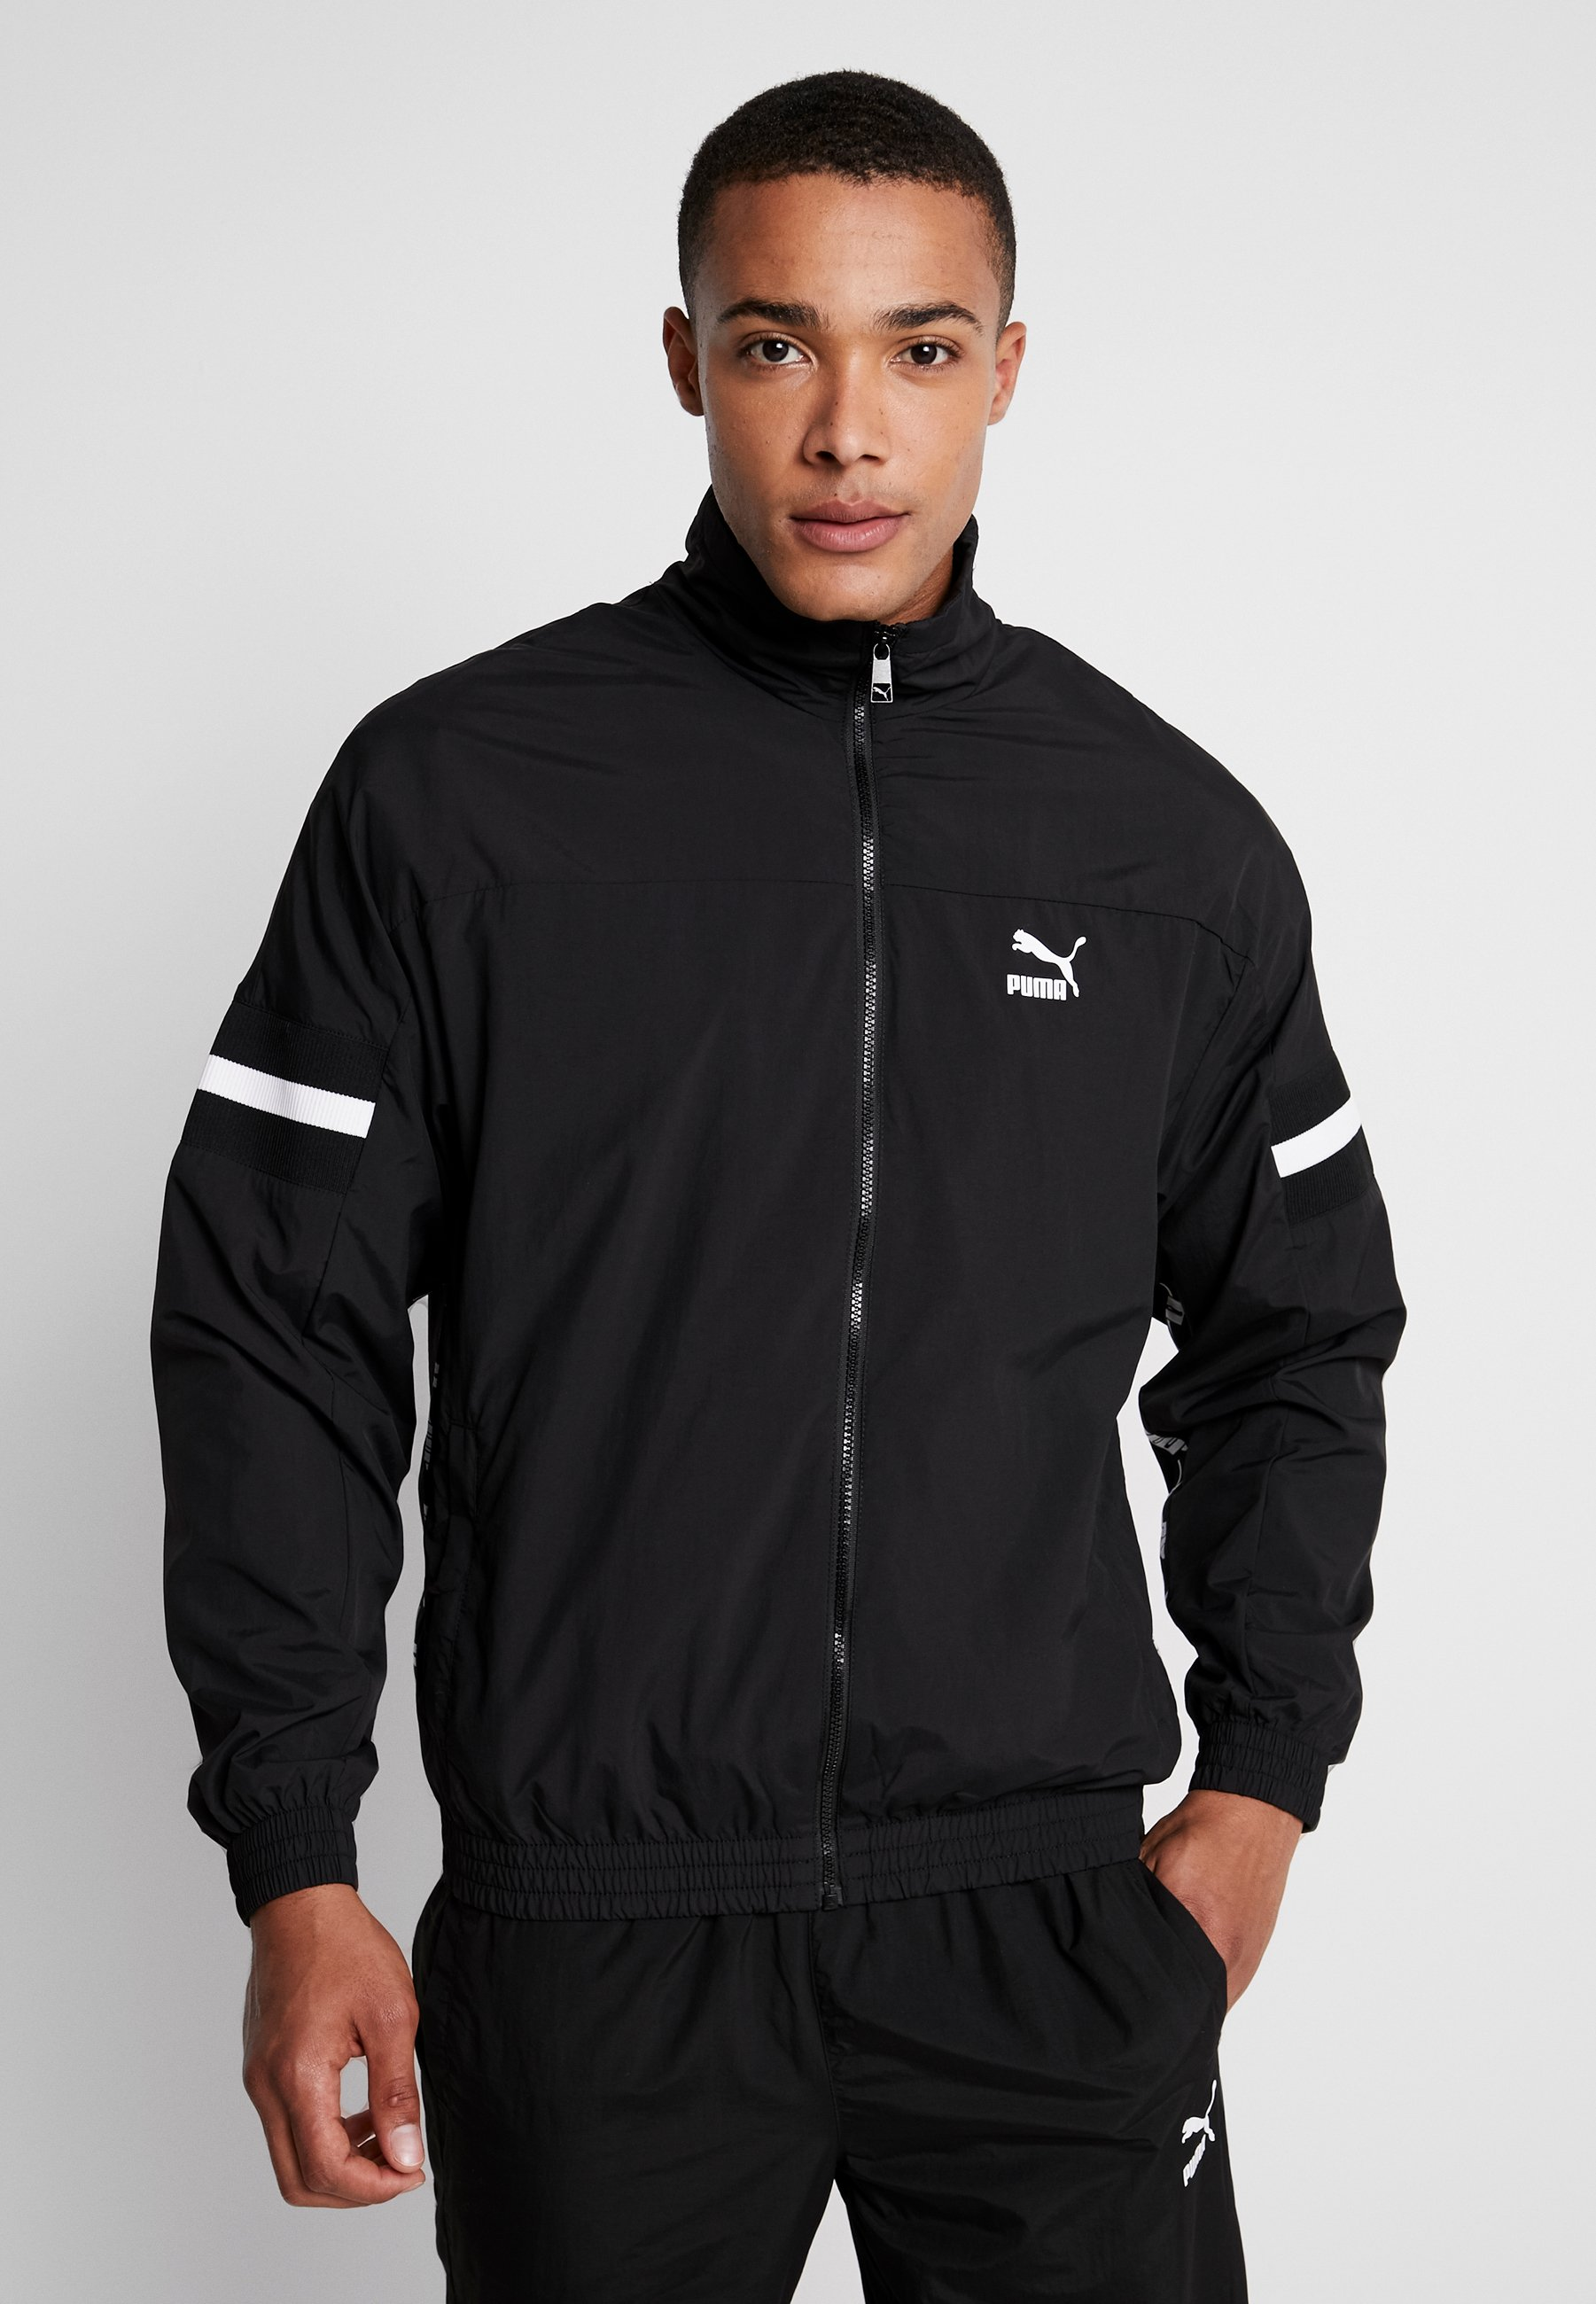 Woven De Black JacketVeste Survêtement Puma AL4R5q3j